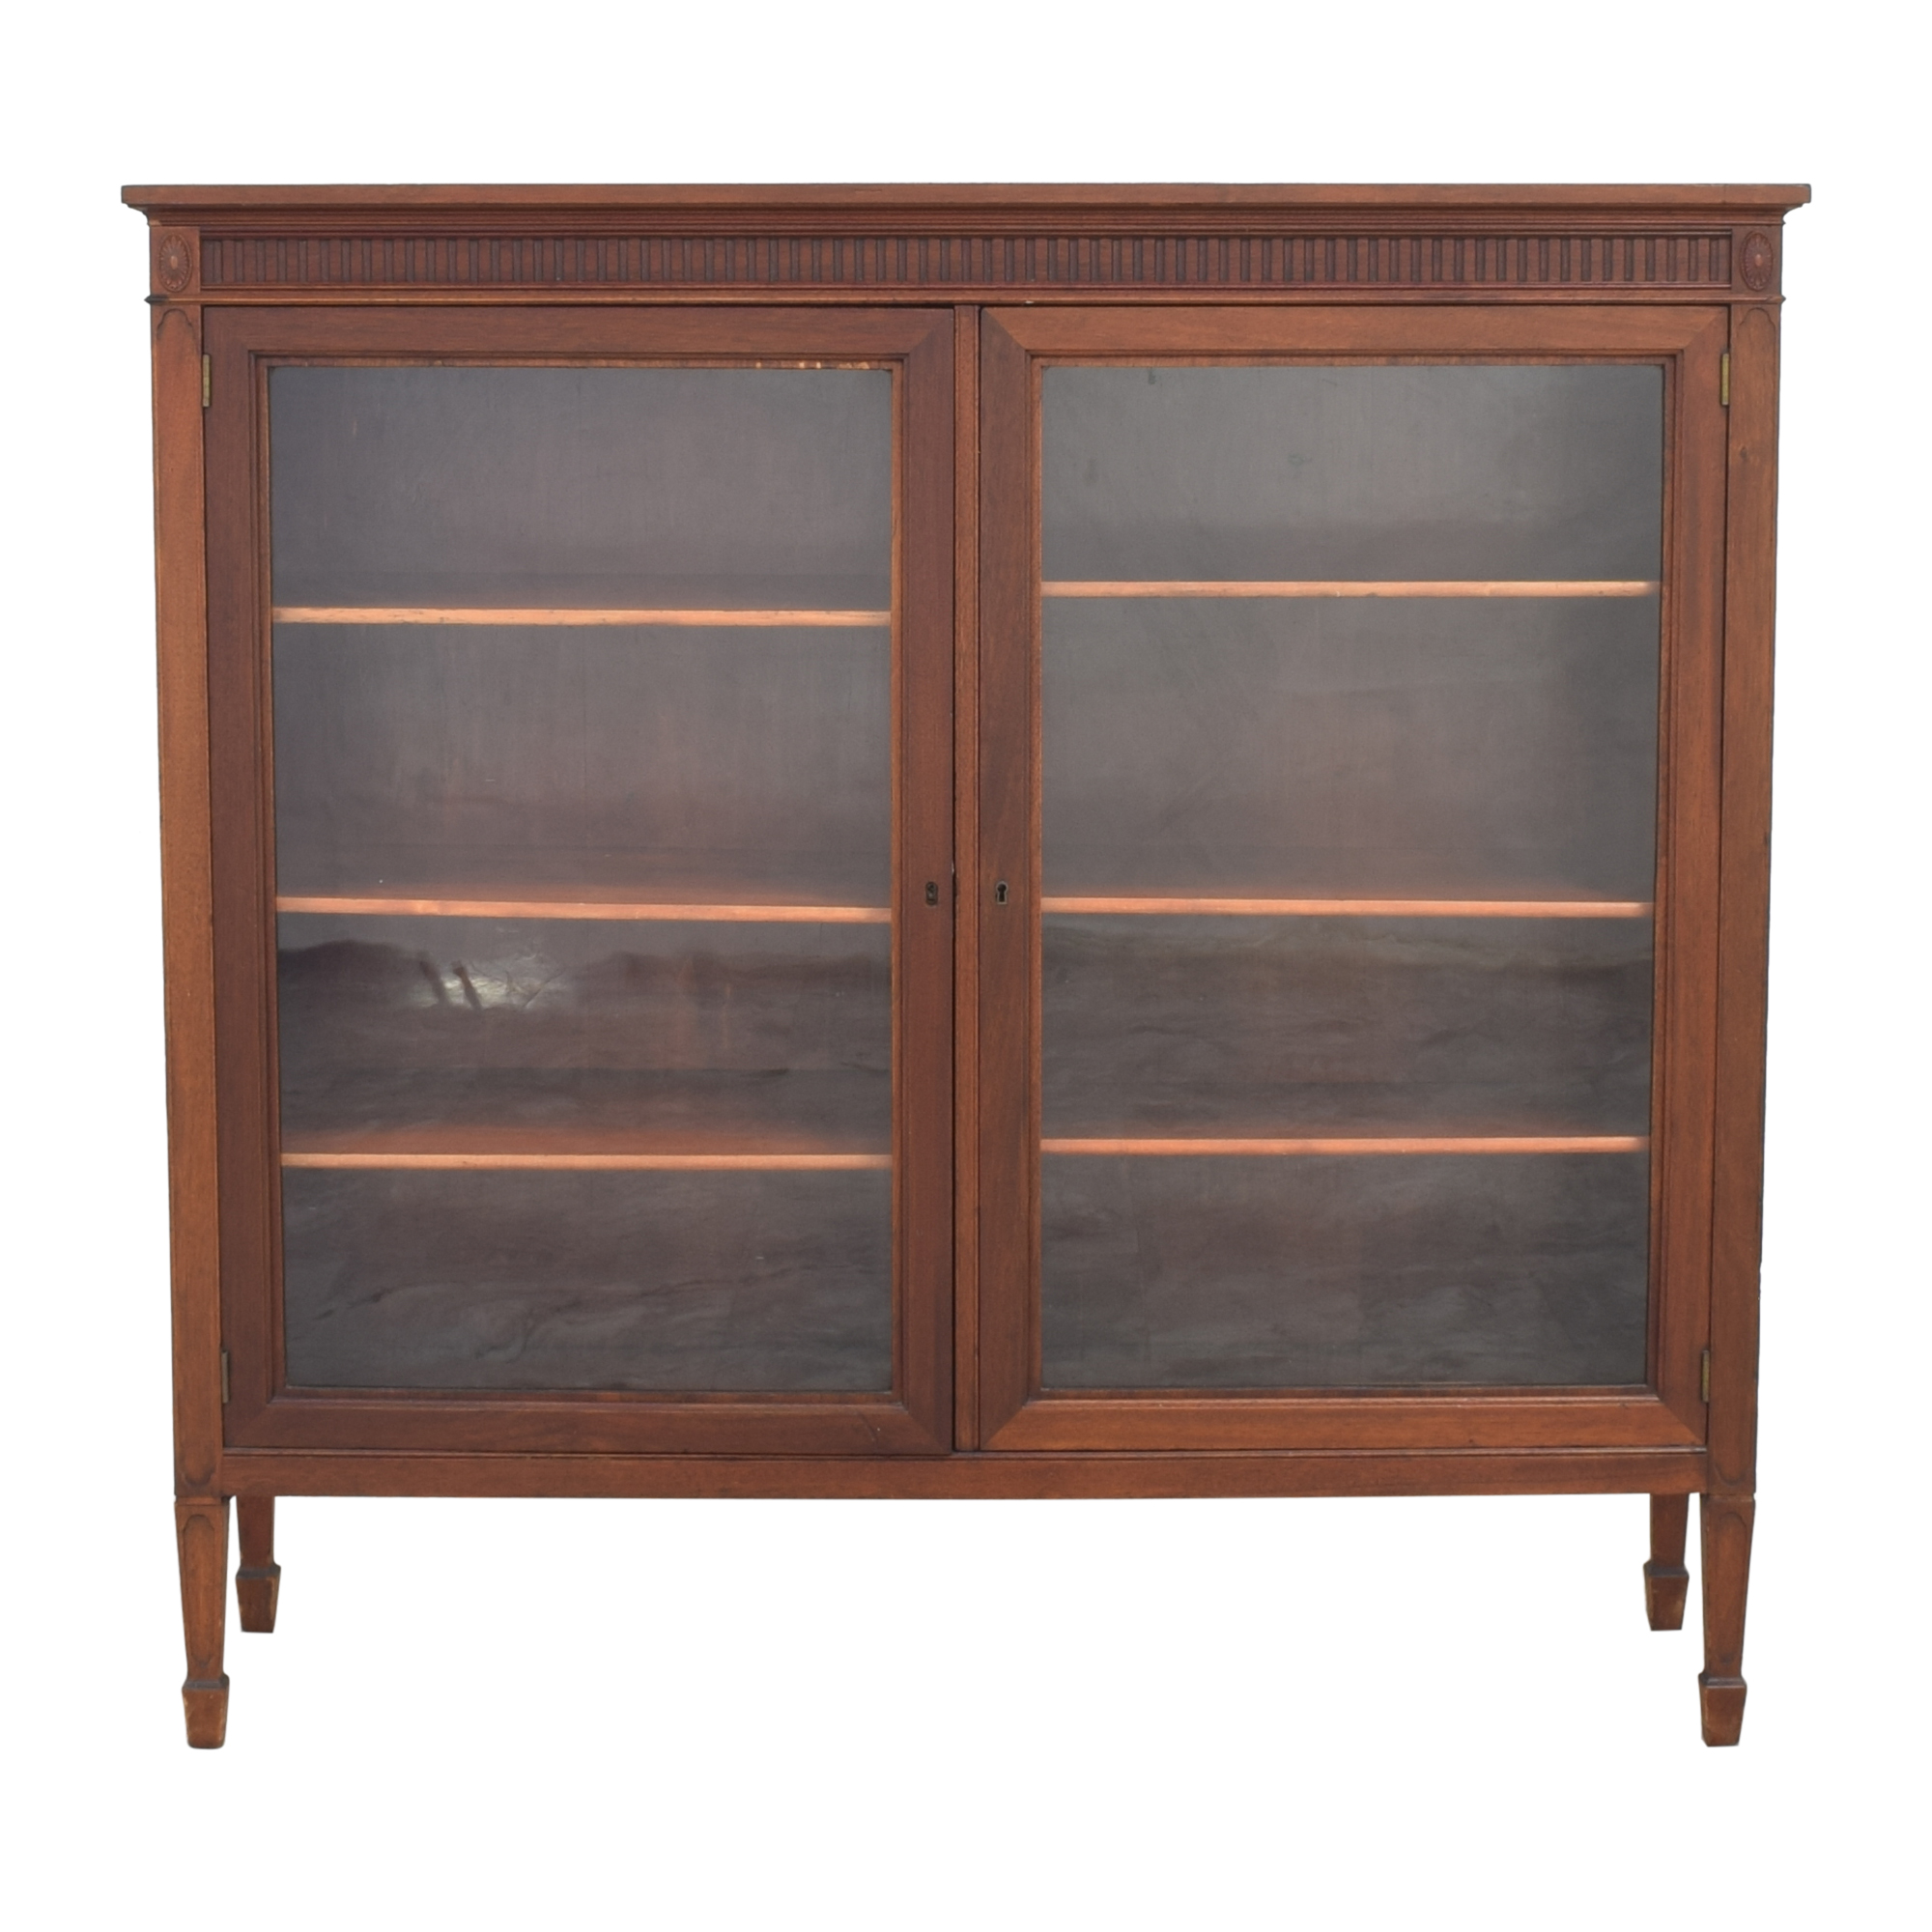 Double Door Curio Cabinet for sale